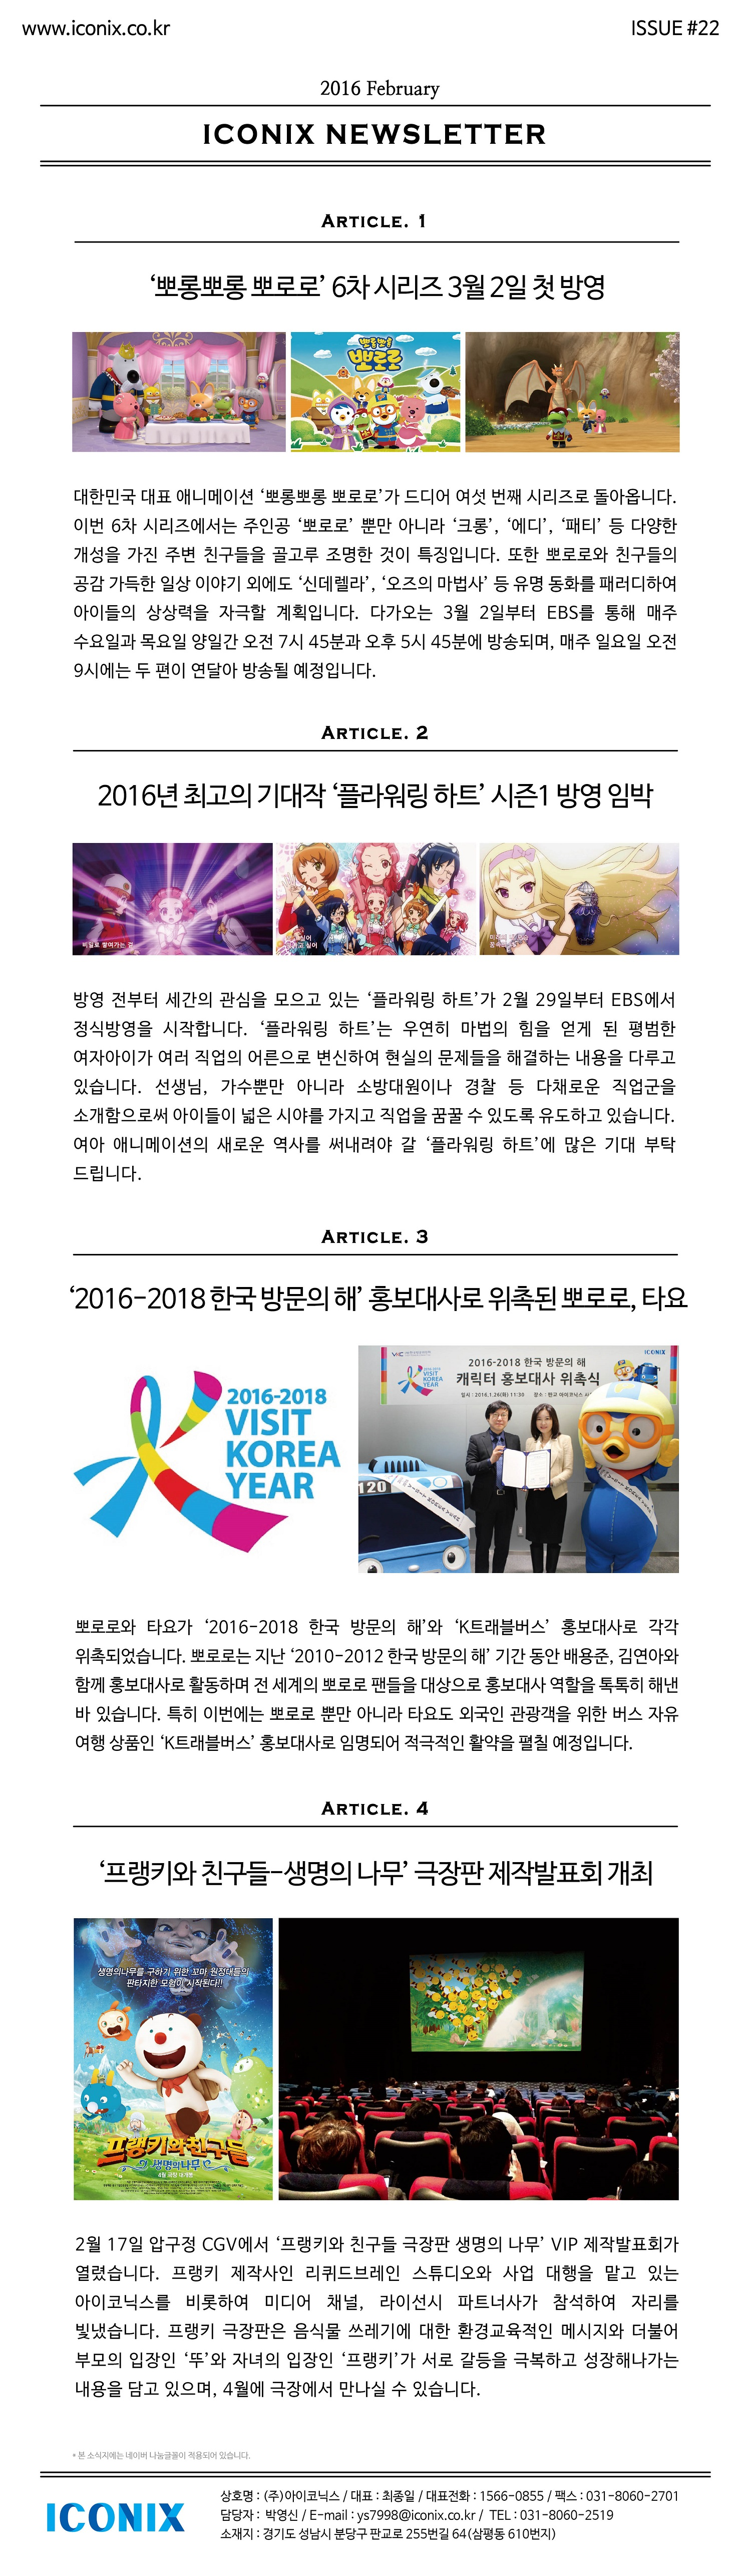 ICONIX_News Letter_1602_저용량.jpg